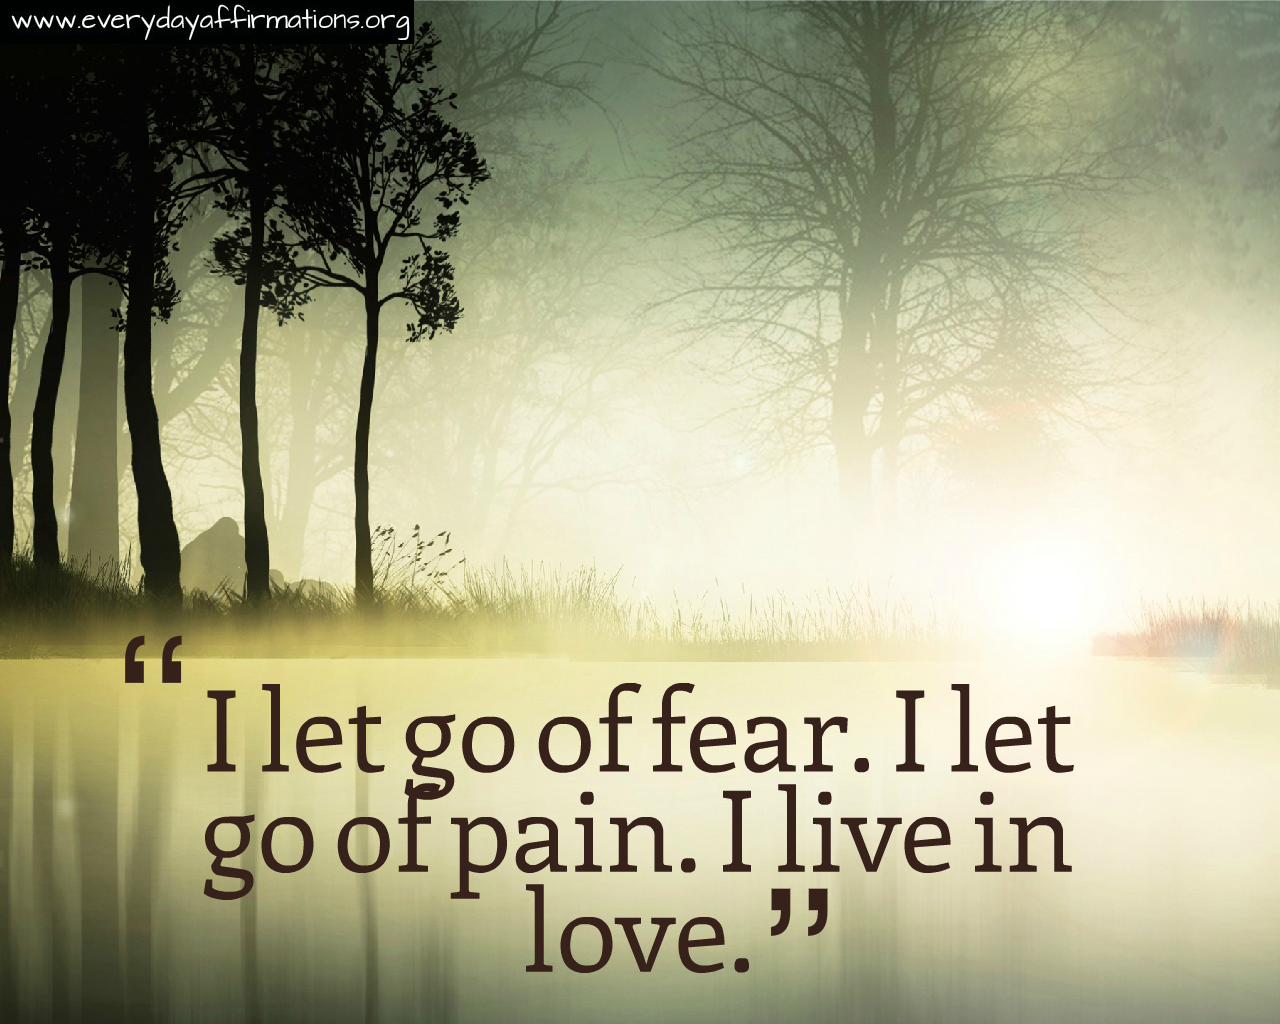 let-go-of-fear